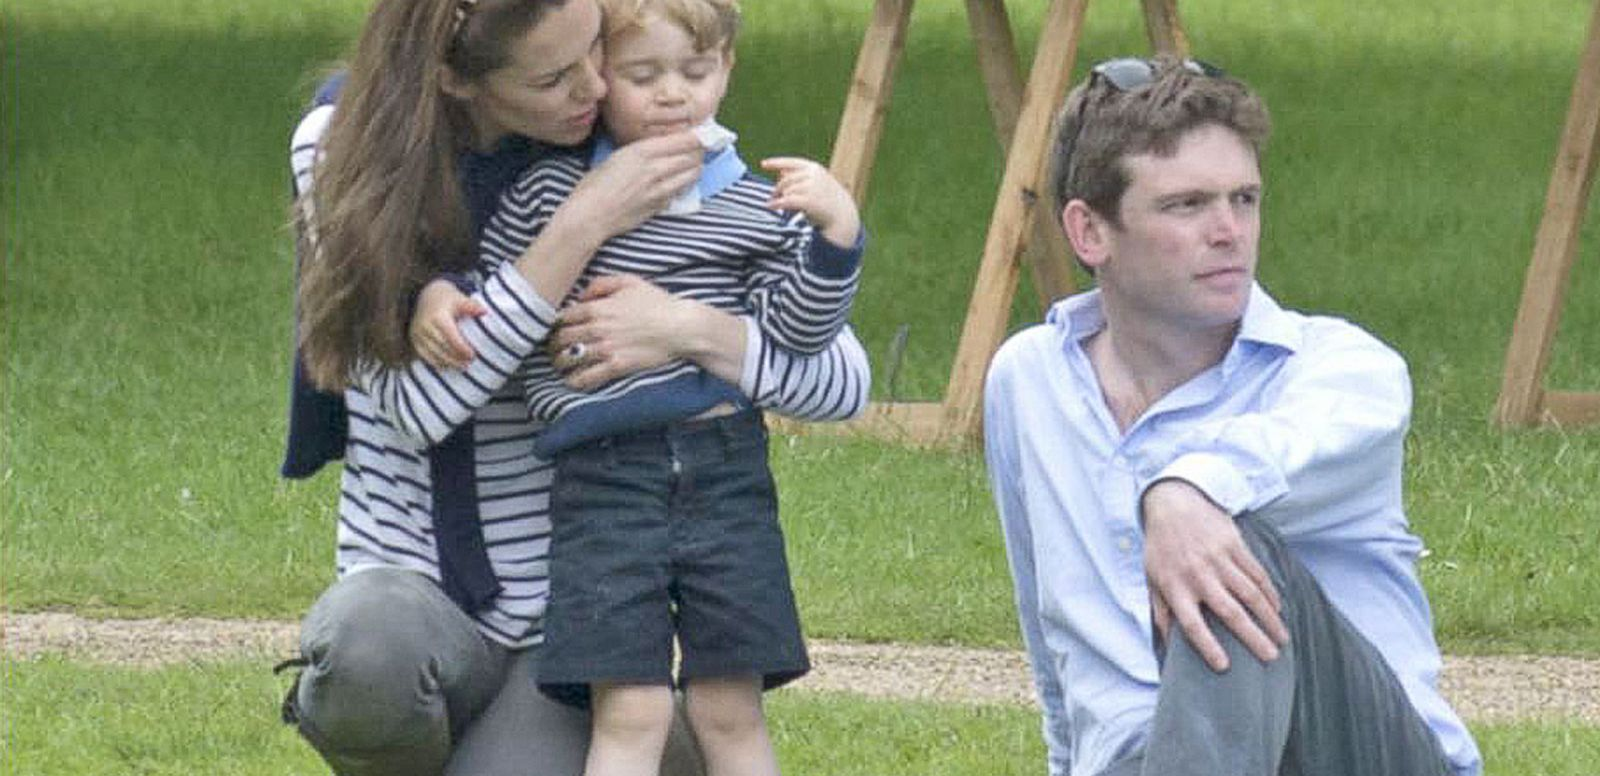 VIDEO: New Photo of Prince George